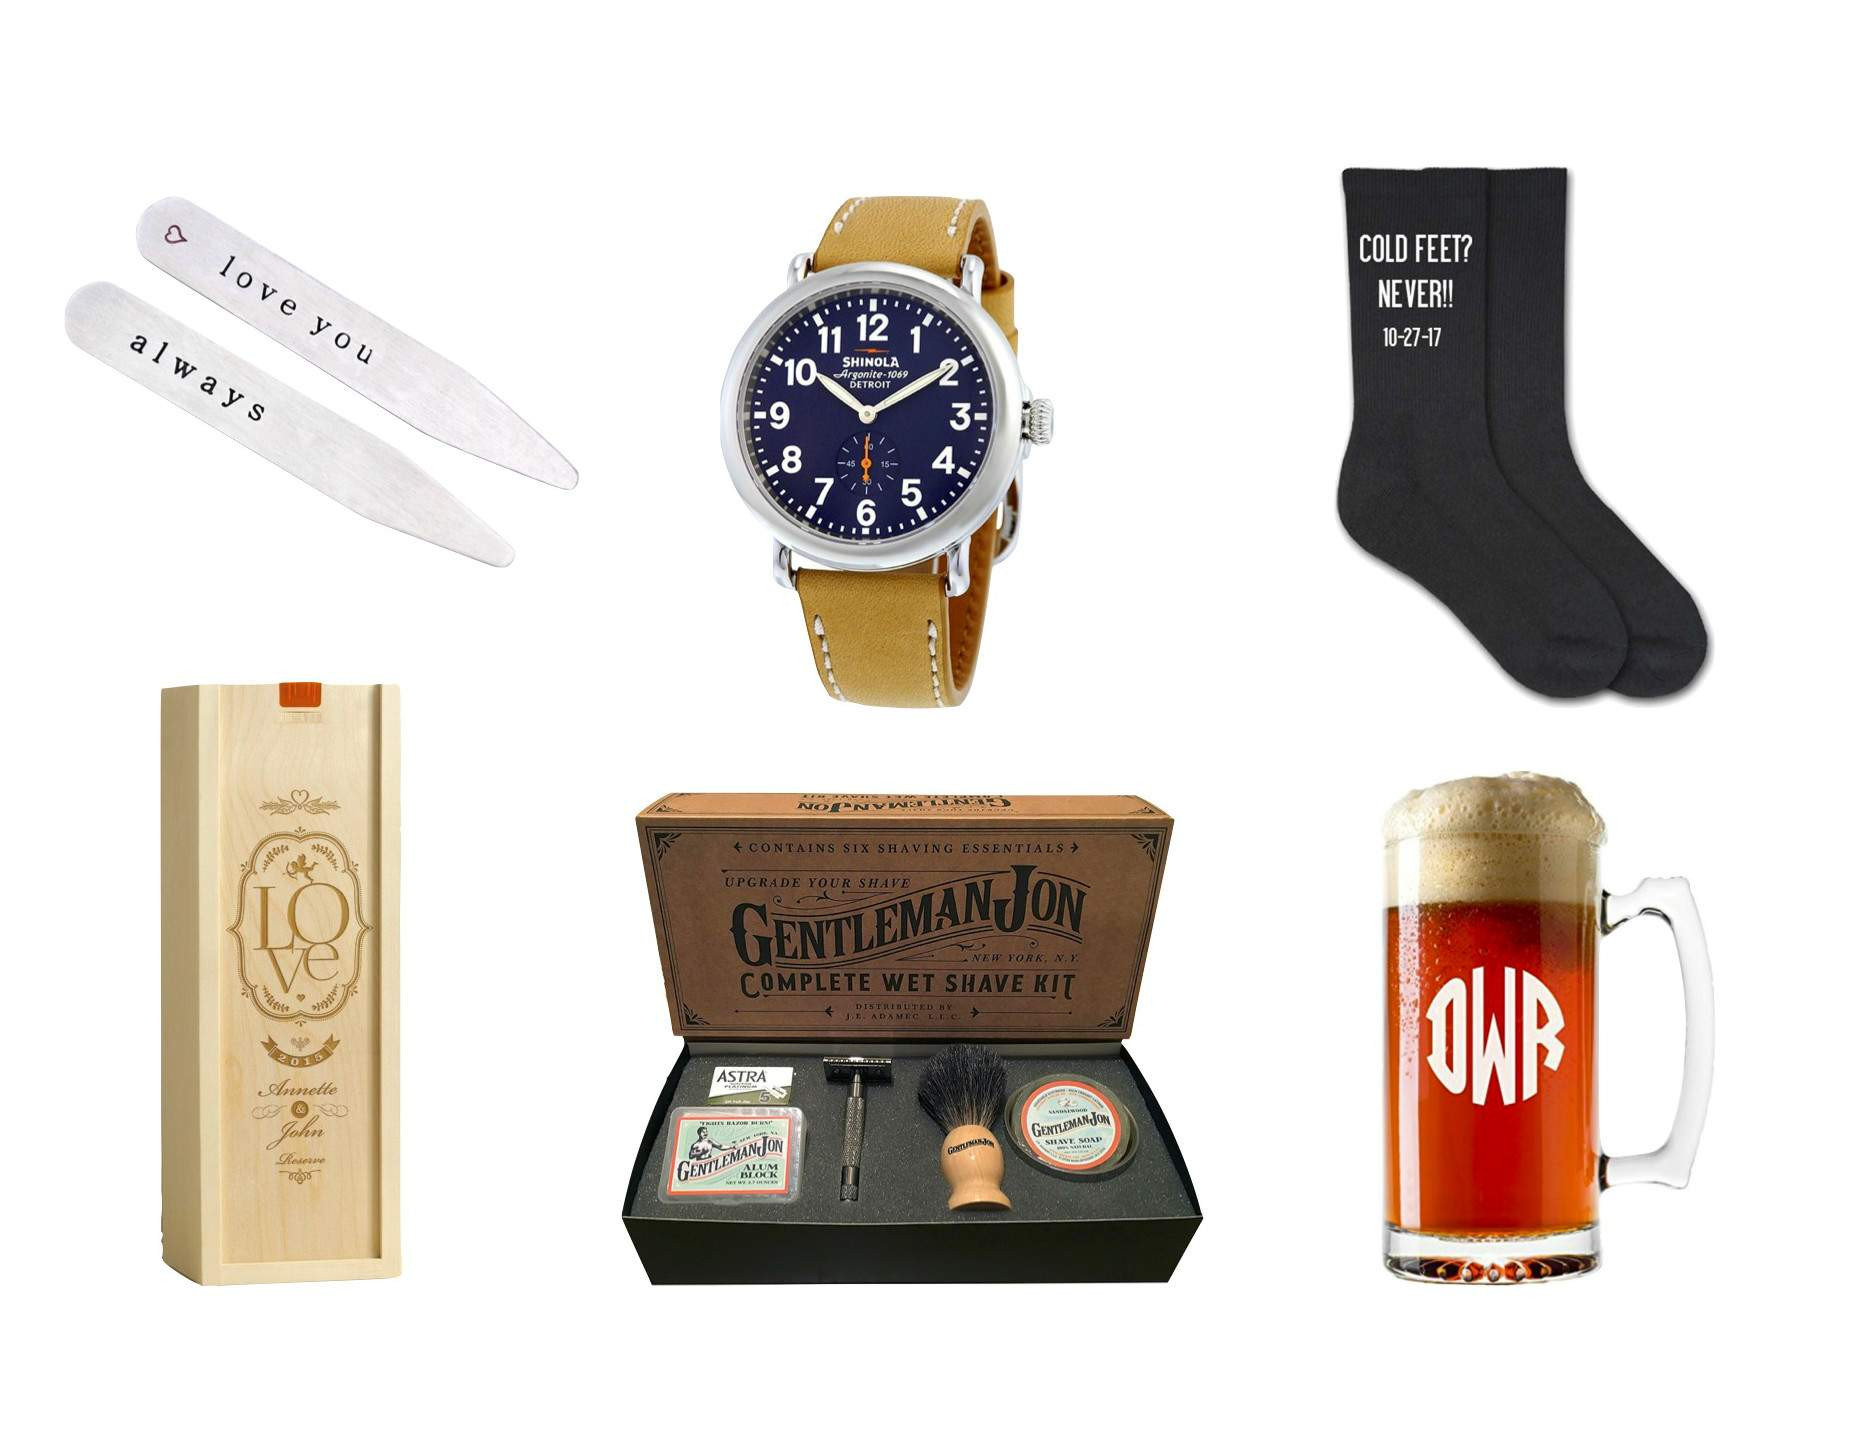 Best ideas about Wedding Gift Ideas For Groom From Bride . Save or Pin Best Wedding Day Gift Ideas From the Bride to the Groom Now.